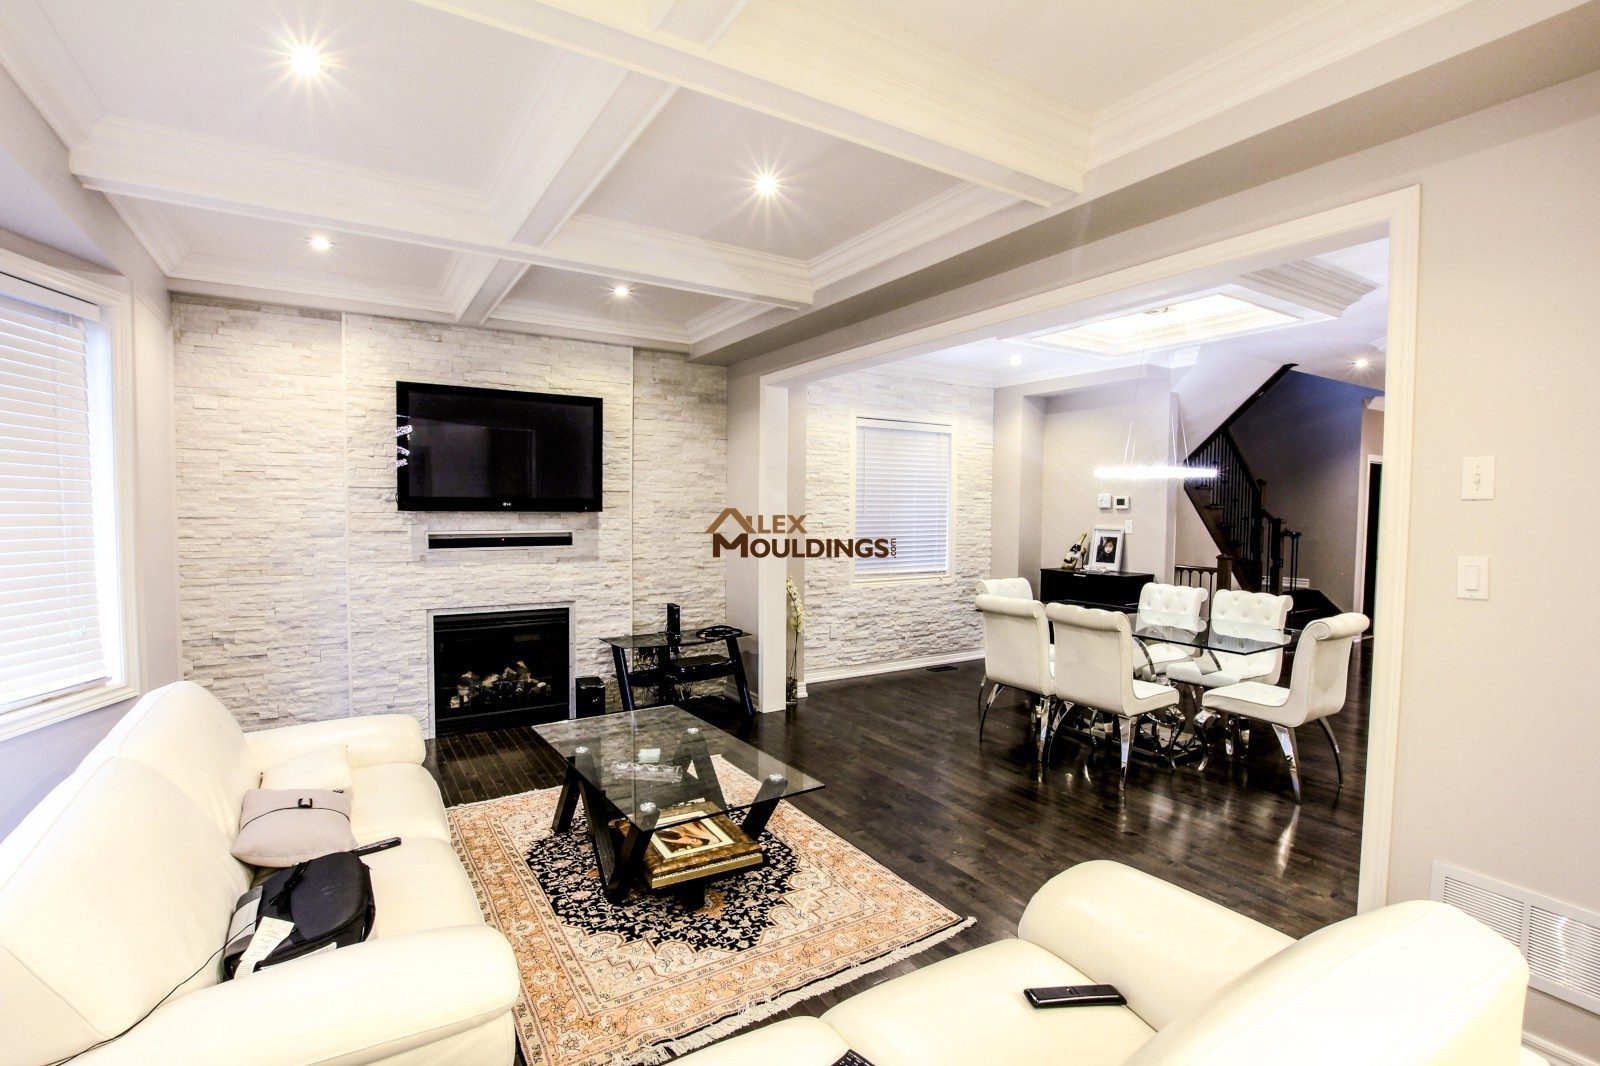 Coffered ceiling in the dining area